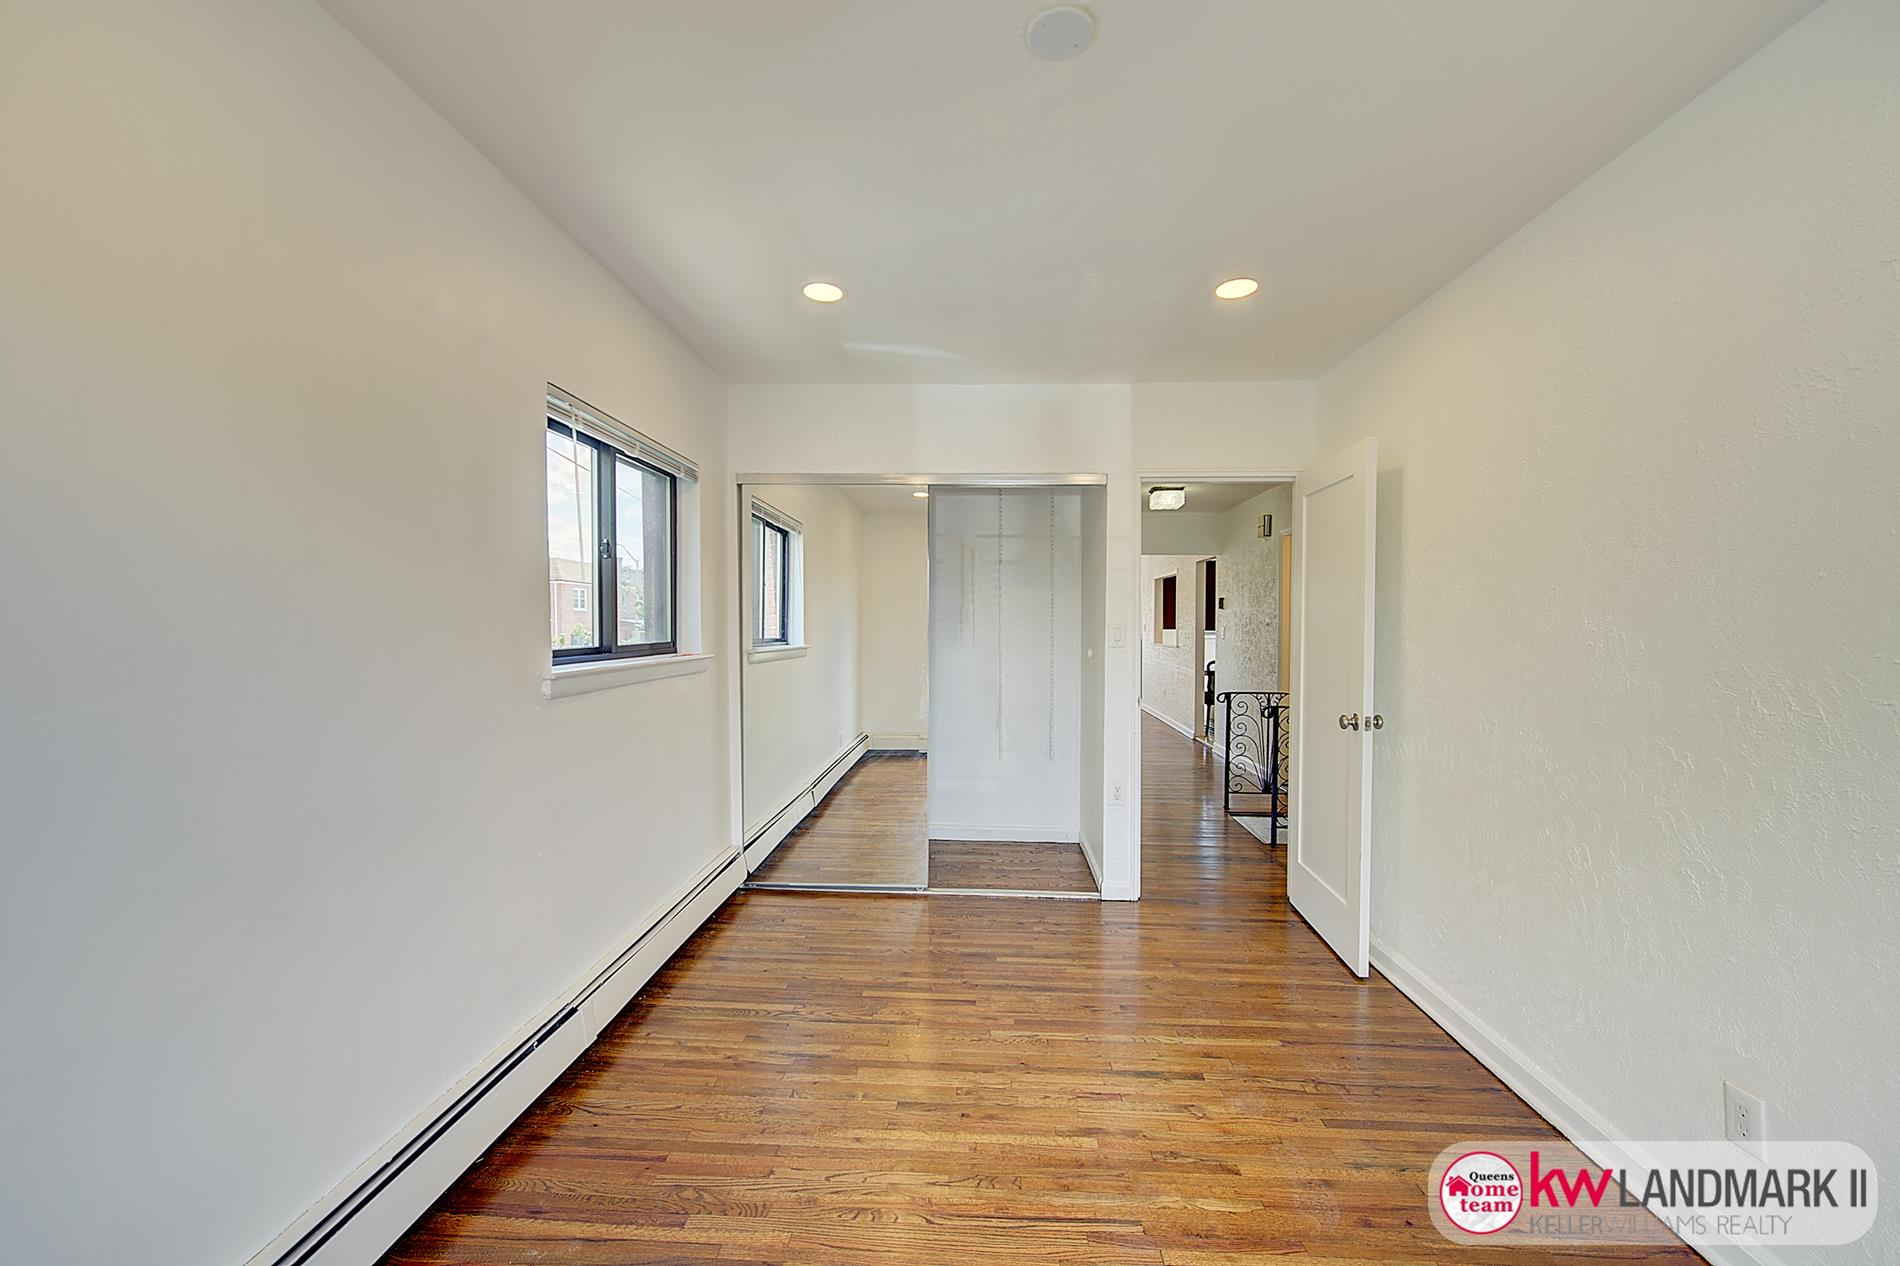 77-19 30th Avenue Woodside Queens NY 11370